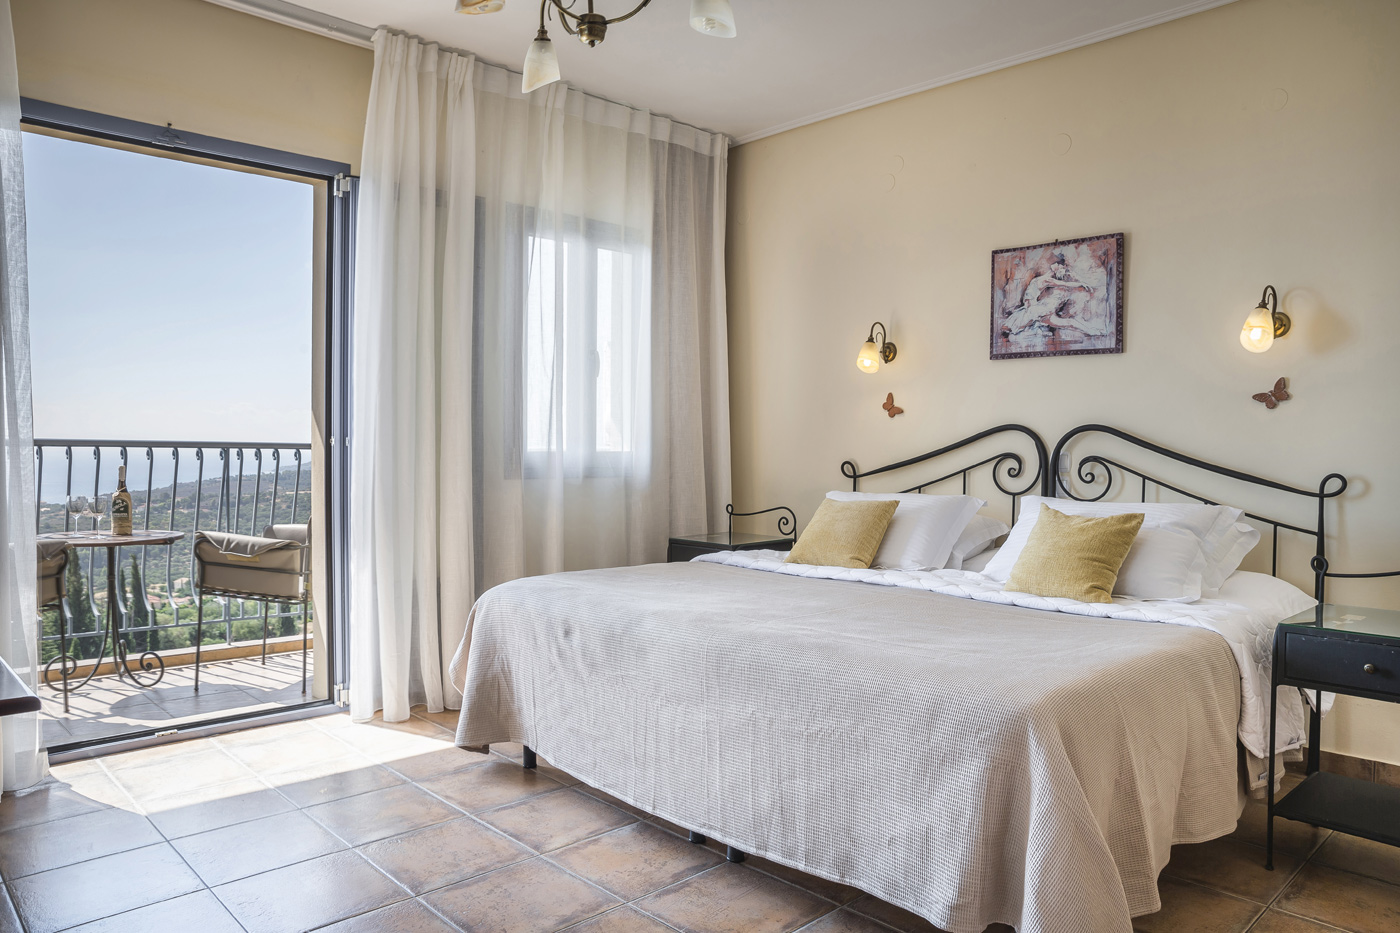 Kefalonia Studios - Kefalonia Apartments - Diana Studios & Apartments Trapezaki Kefalonia - Hotel Trapezaki Kefalonia -  Accommodation Kefalonia - Apartments Trapezaki Kefalonia - Studios Trapezaki Kefalonia - Sea View Studios Kefalonia - Trapezaki Studios Kefalonia - Trapezaki Apartments Kefalonia